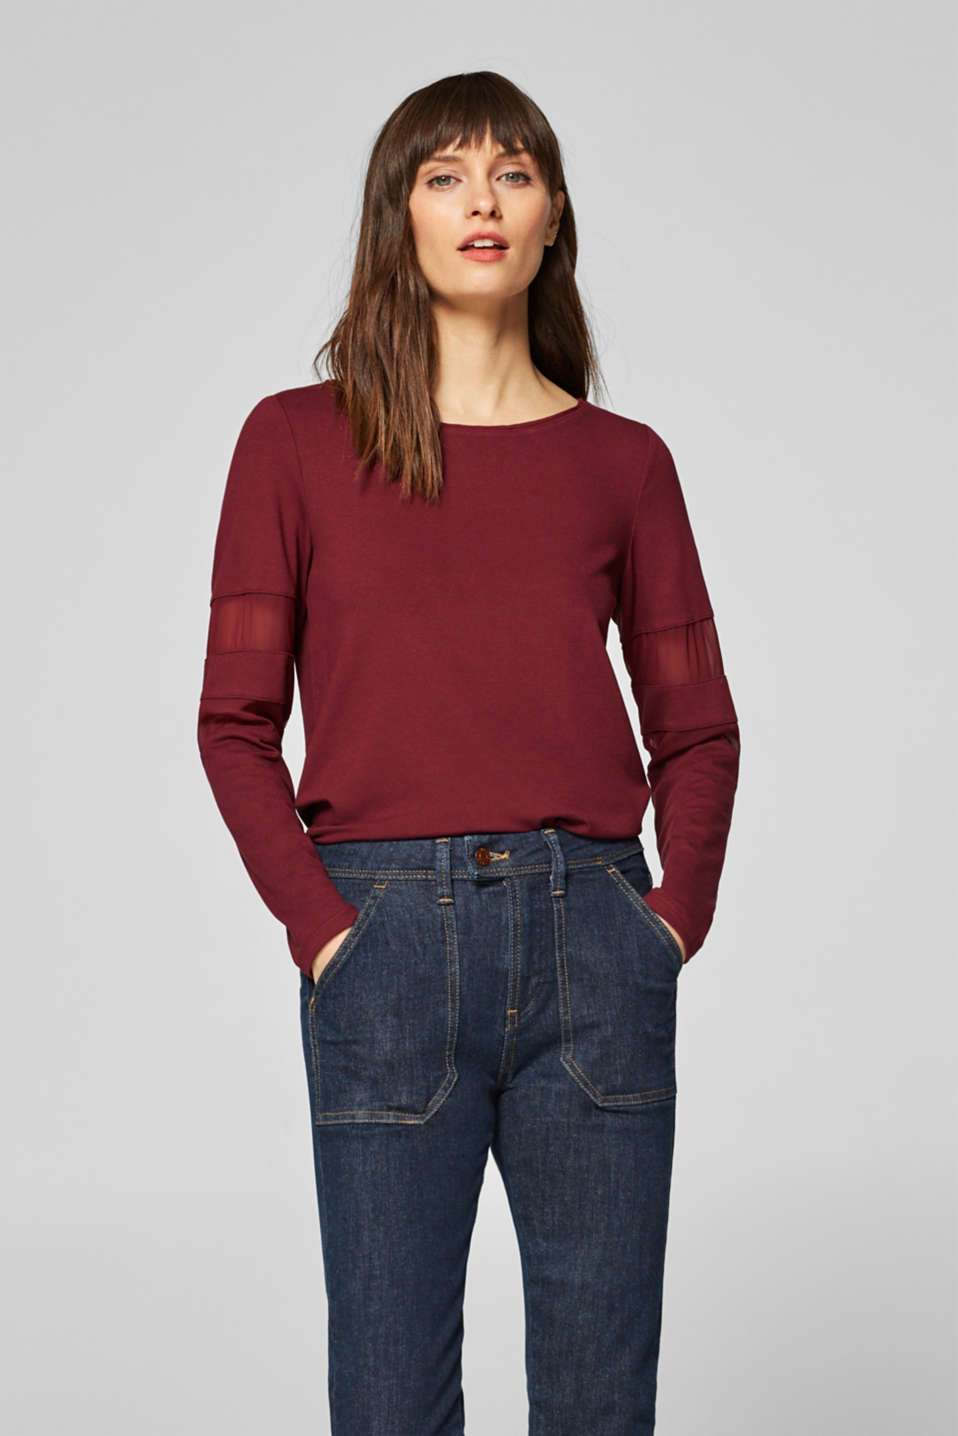 Esprit - Long sleeve top with chiffon trims